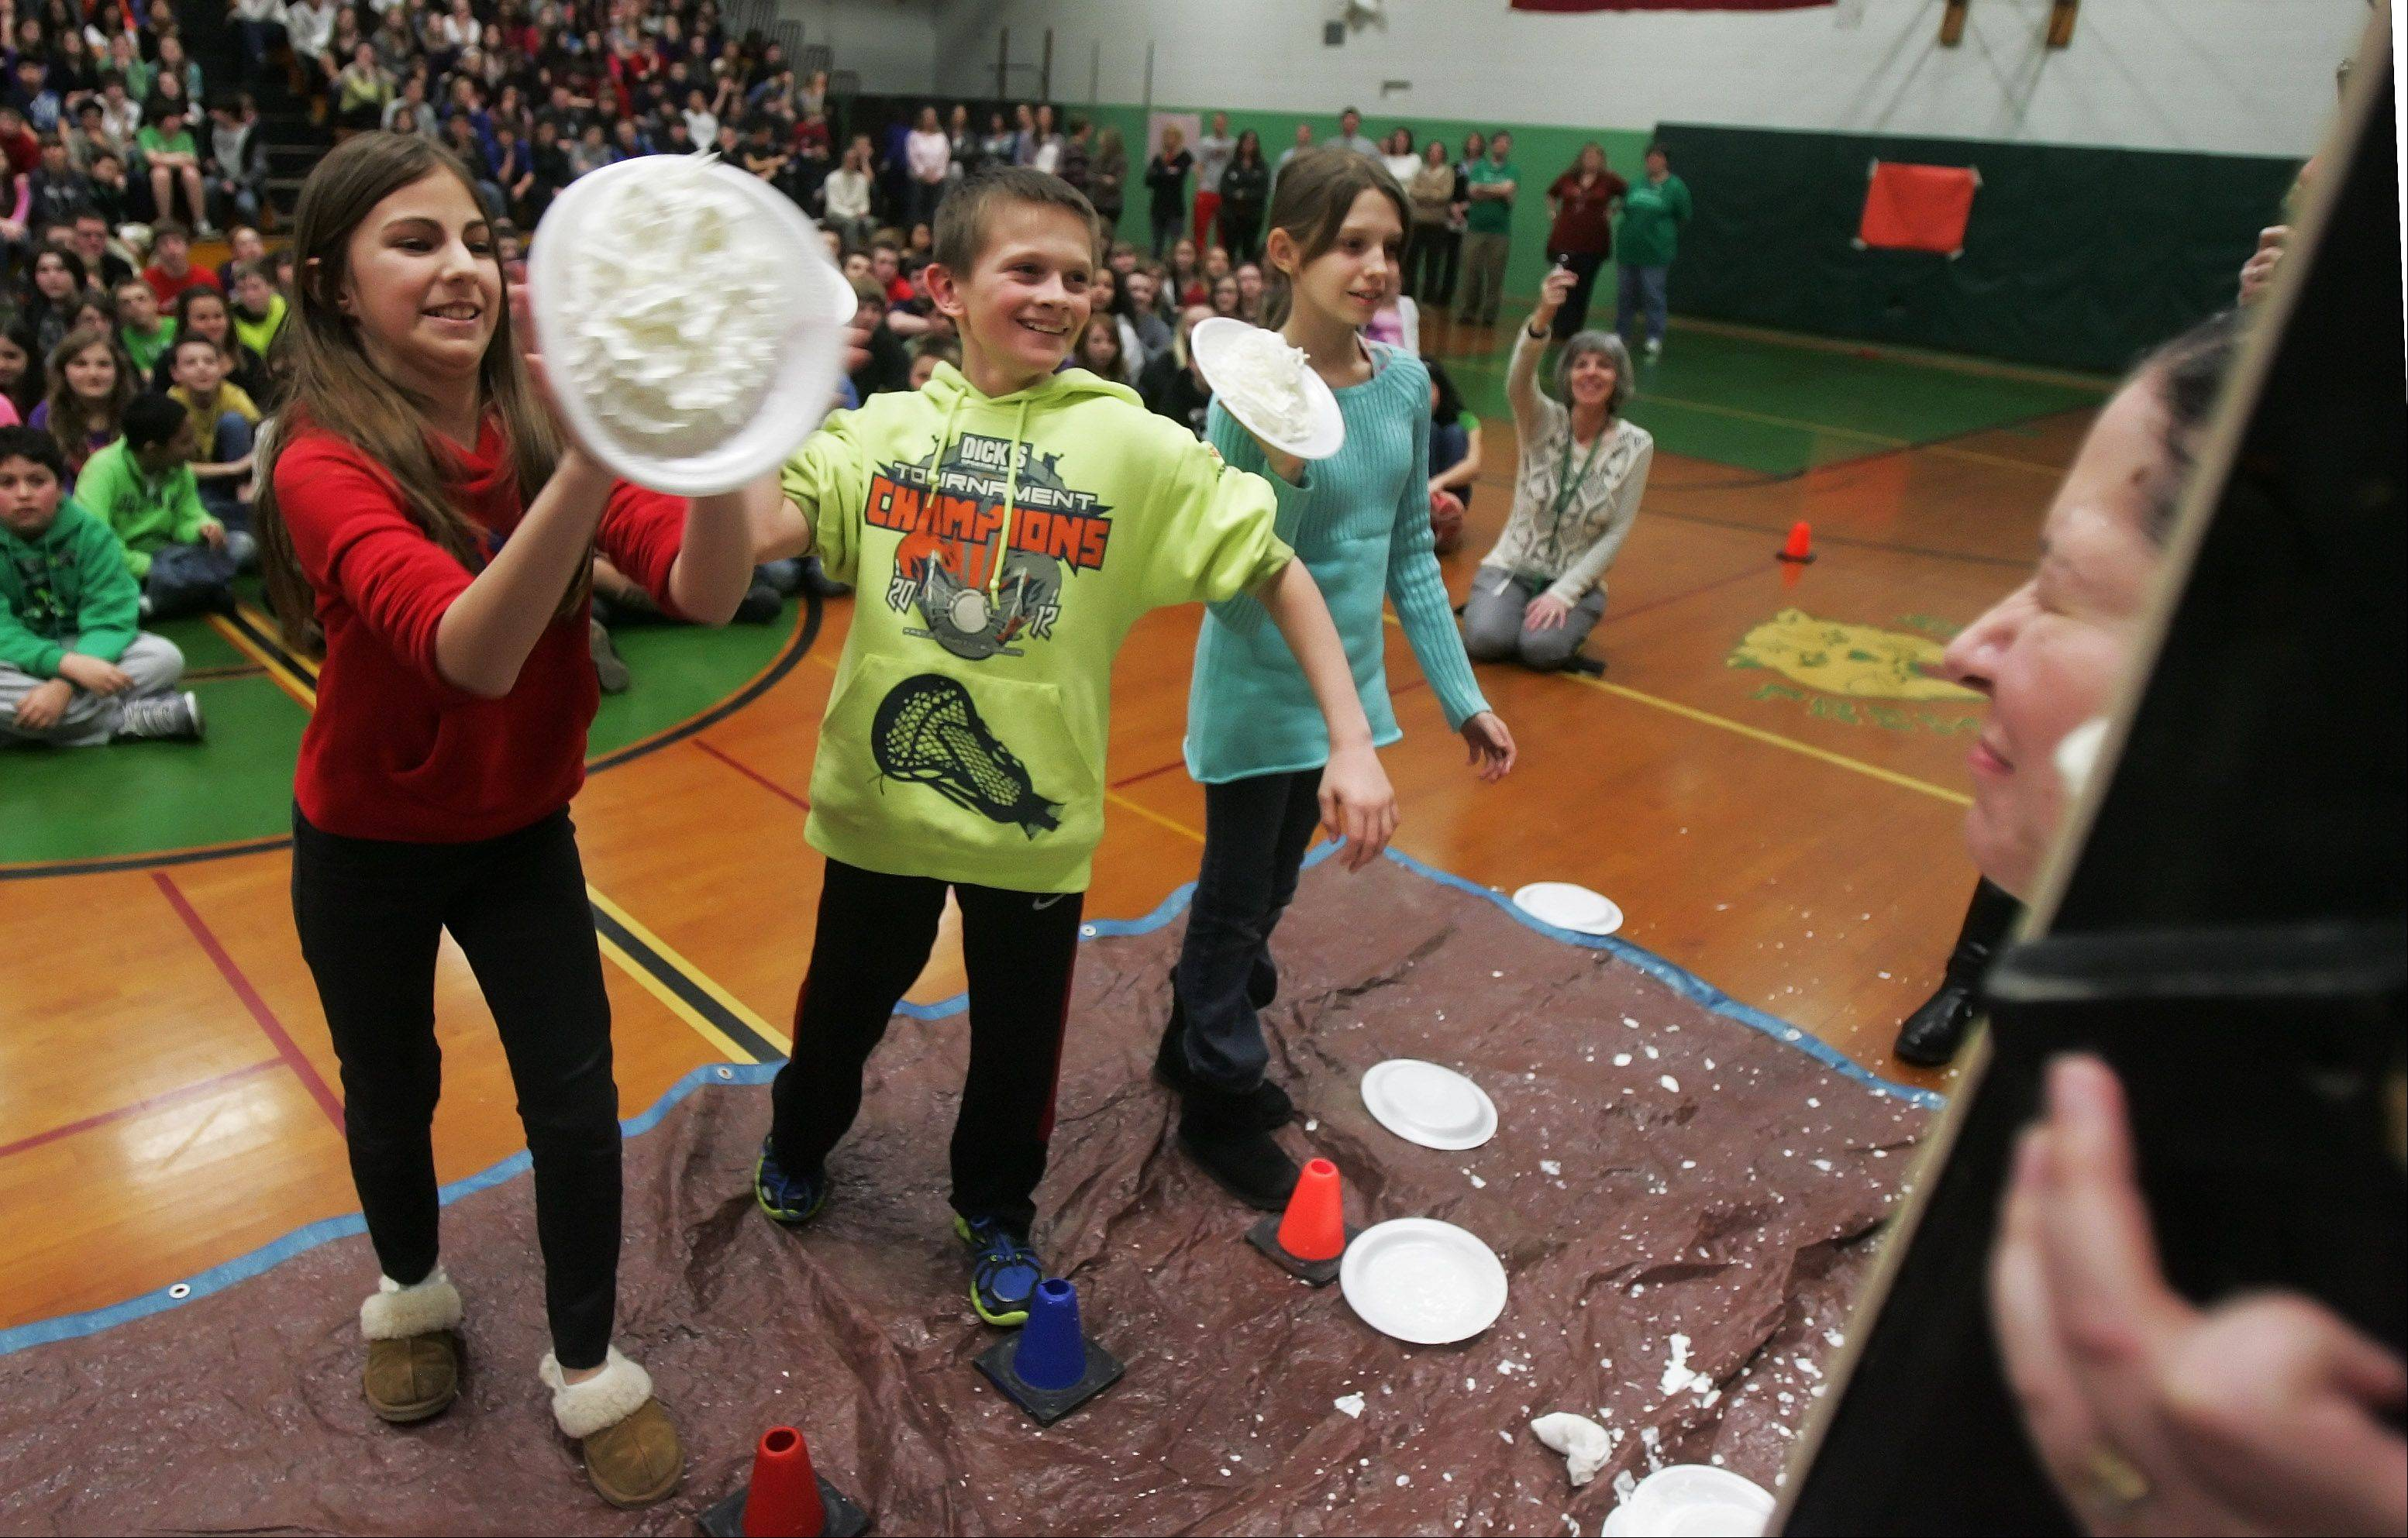 Students Samantha Faruzzi, left, Eli Daugs, and Amanda Valenti, throw pies at thier math teachers at Fremont Middle School in Mundelein Thursday as part of a Pi Day fundraiser for St. Jude Children's Research Hospital. Pi is 3.14, Thursday was March 14, and students donated $3.14 to enter a raffle to throw a pie at their favorite math teacher.